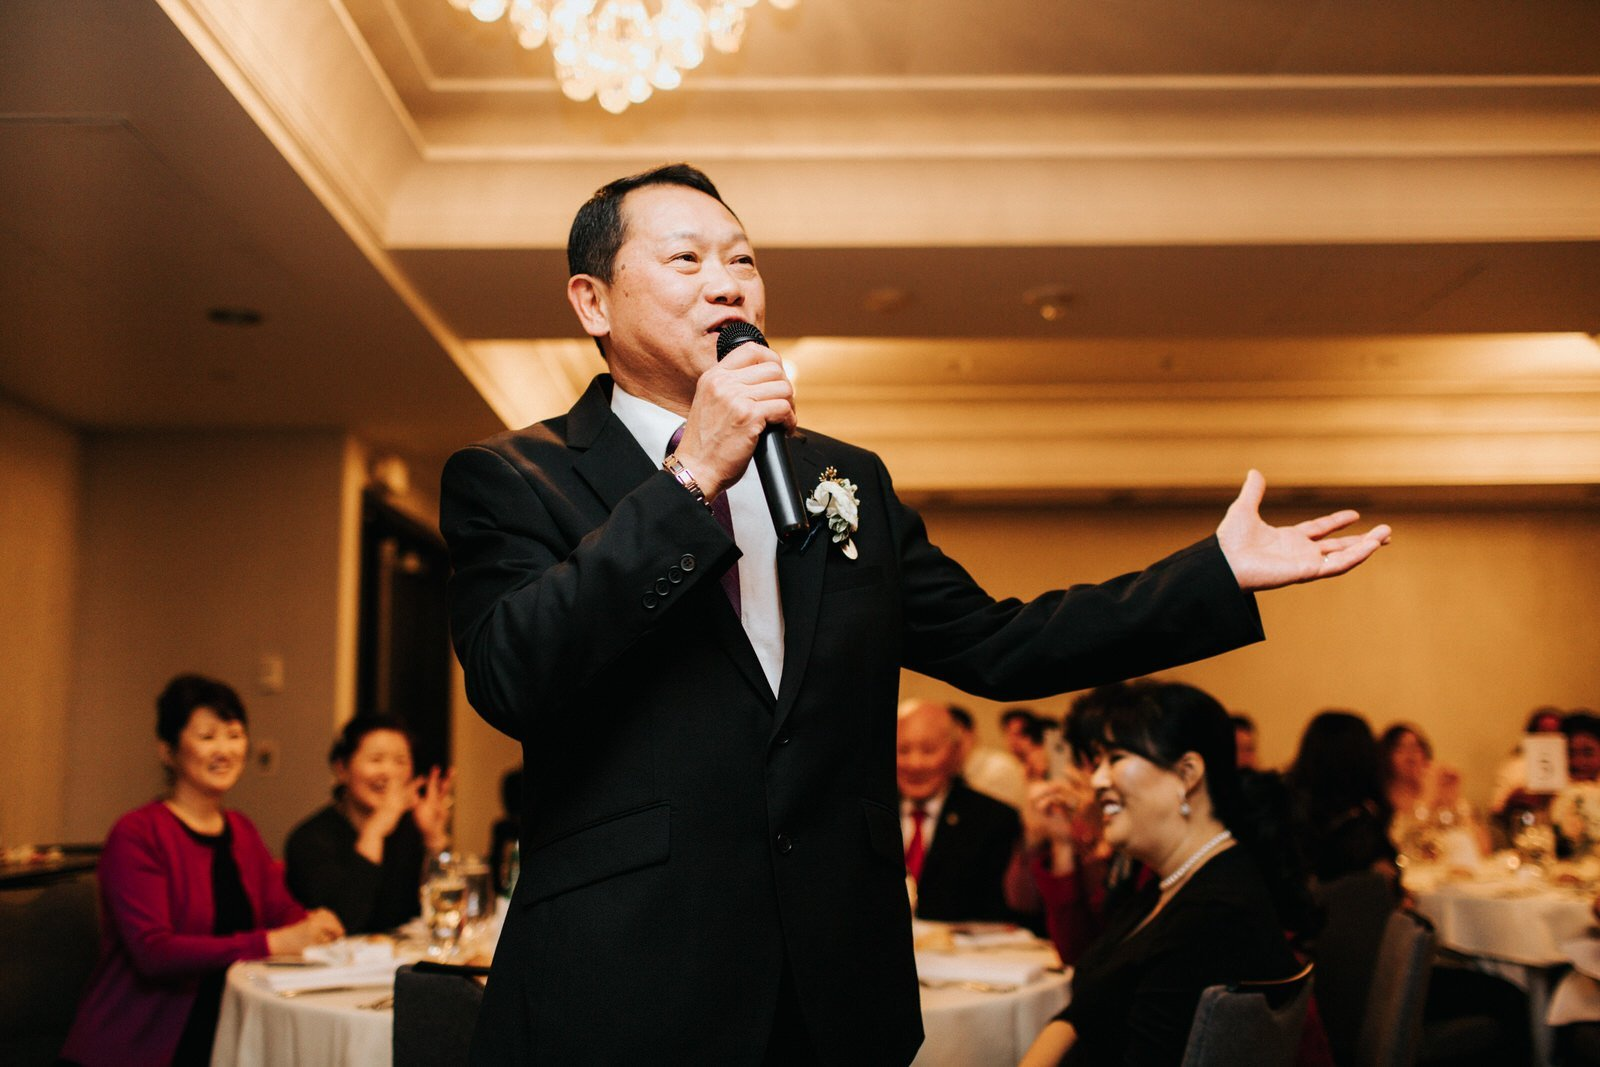 The father of the bride gives a speech during the reception at hotel 1000